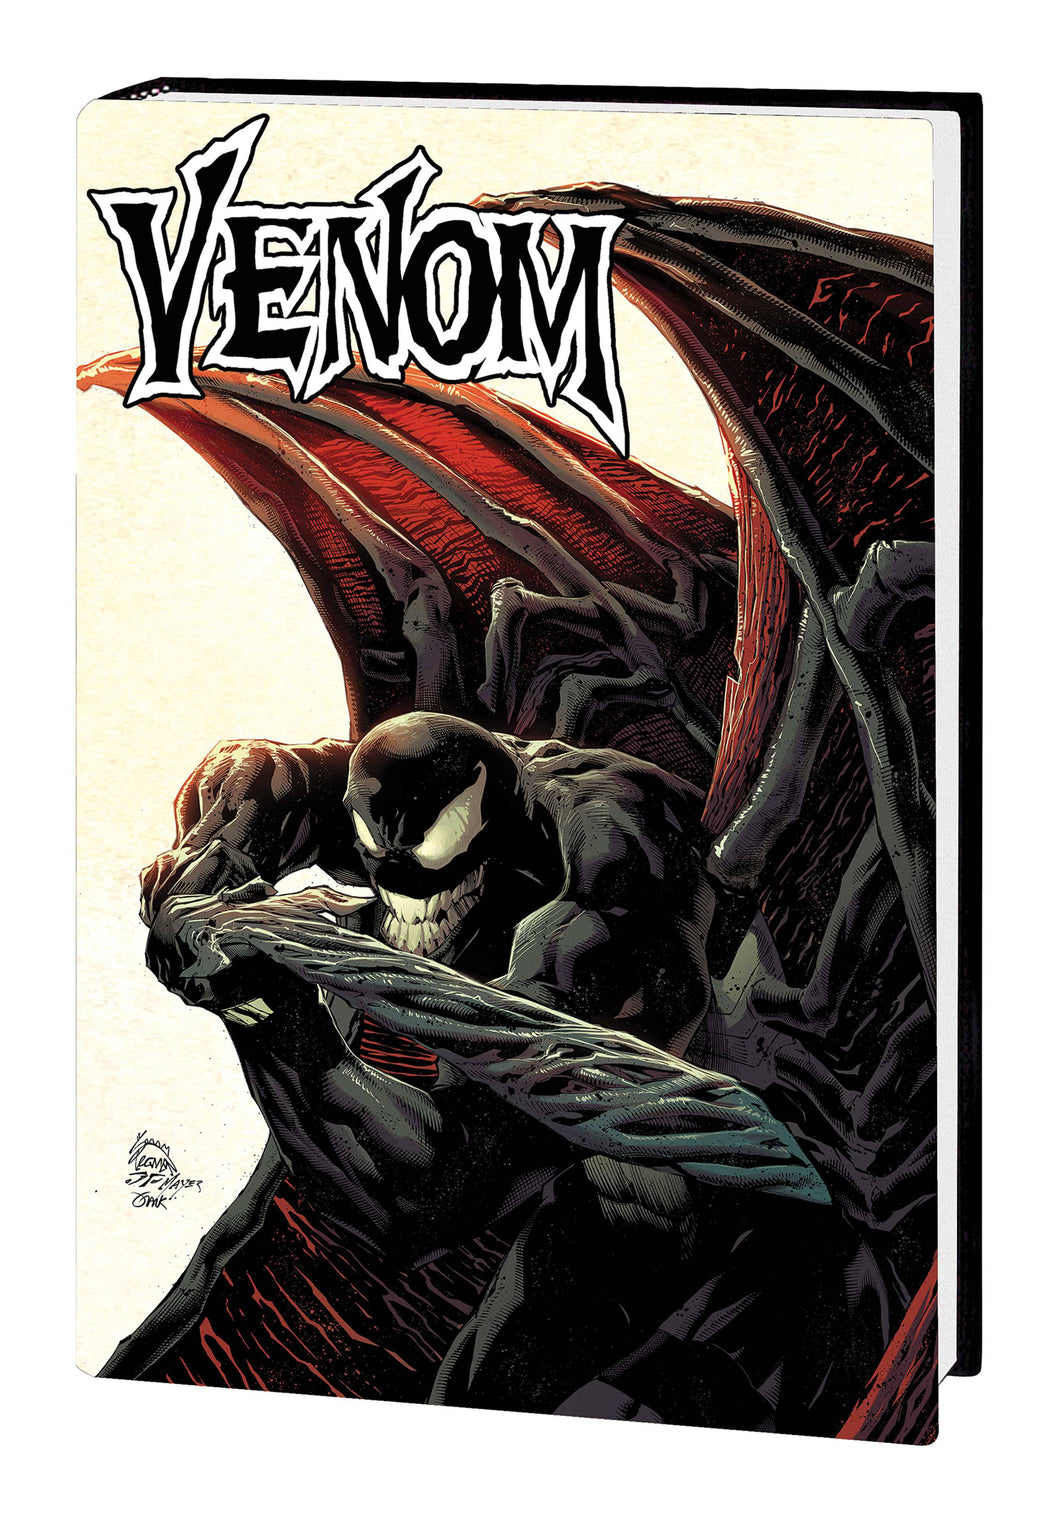 Venom by Donny Cates Vol. 2 HC *OOP*